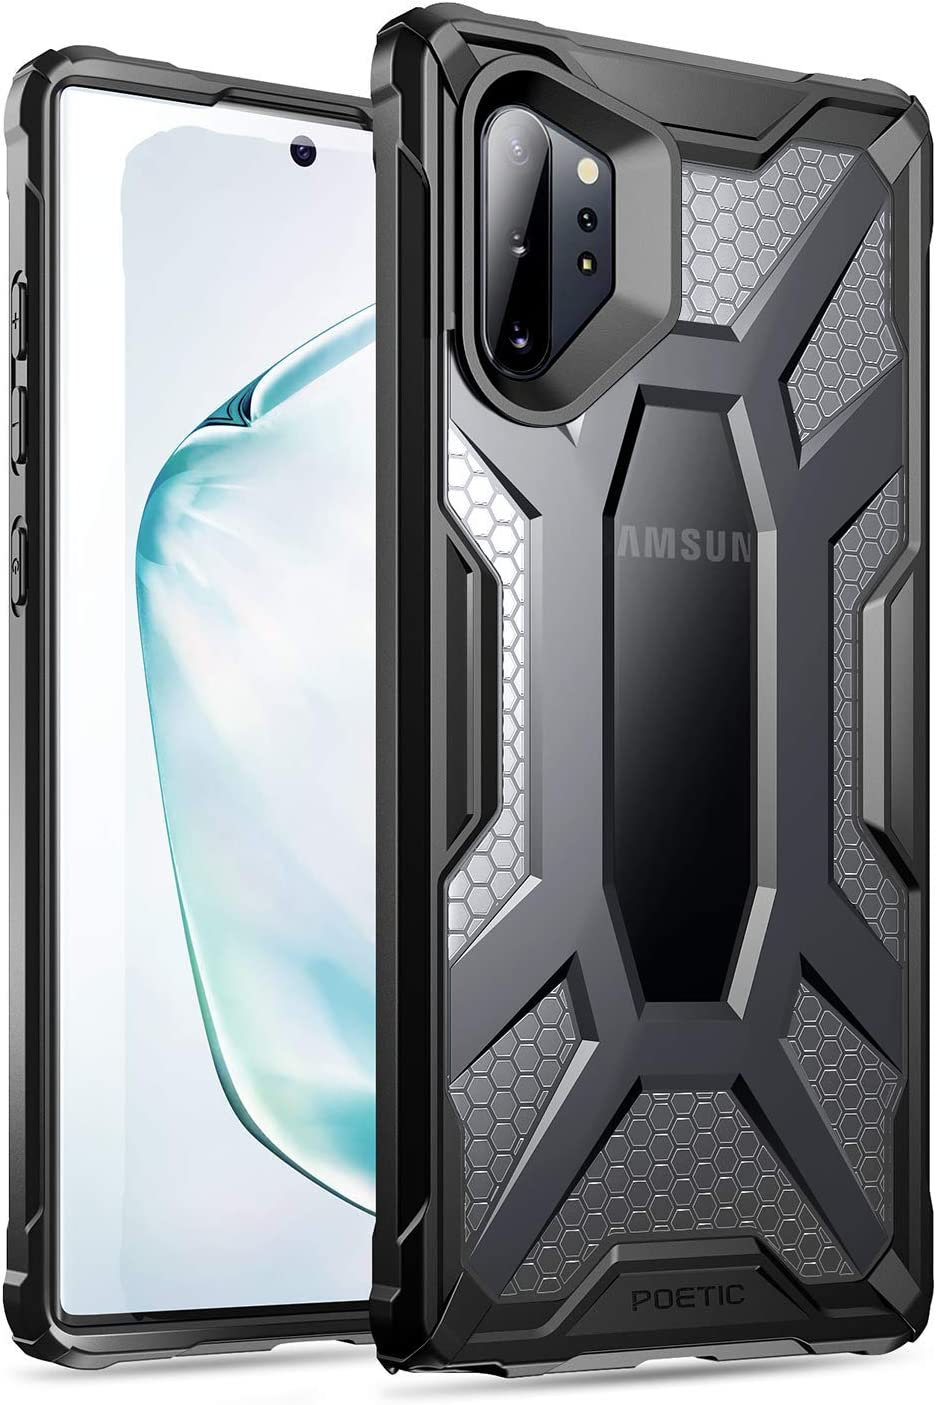 Poetic Galaxy Note 10 Plus Case, Premium Hybrid Protective Clear Bumper Cover, Rugged Lightweight, Military Grade Drop Tested, Affinity, for Samsung Galaxy Note 10+ Plus 5G, Frost Clear/Black